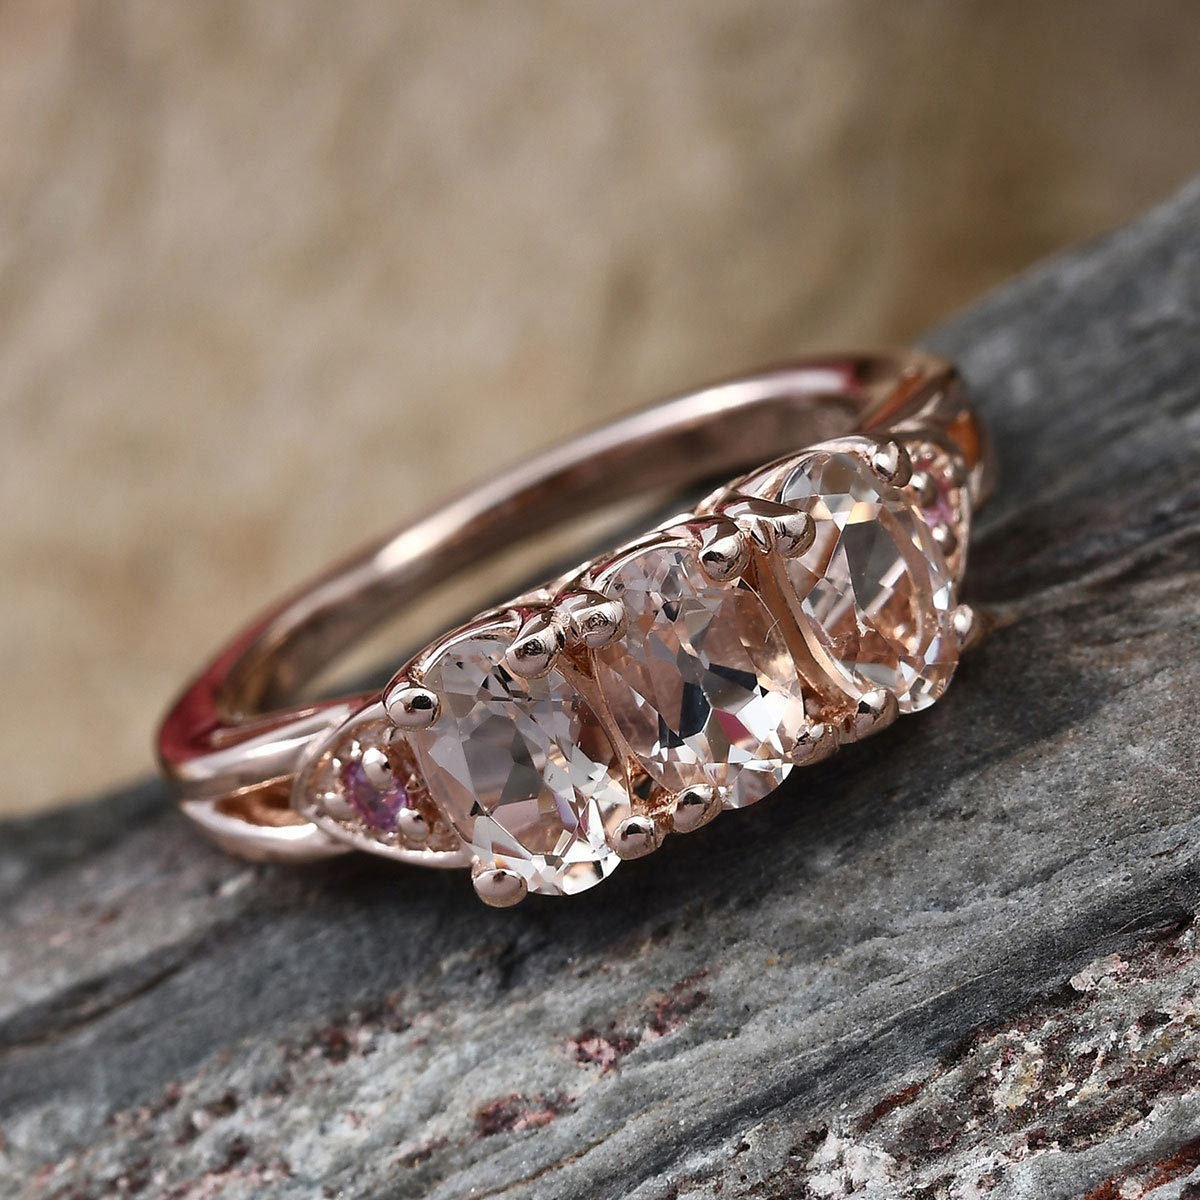 AA Premium Marropino Morganite, Madagascar Pink Sapphire Ring in Vermeil RG Over Sterling Silver (Size 9.0) 1.30 ctw